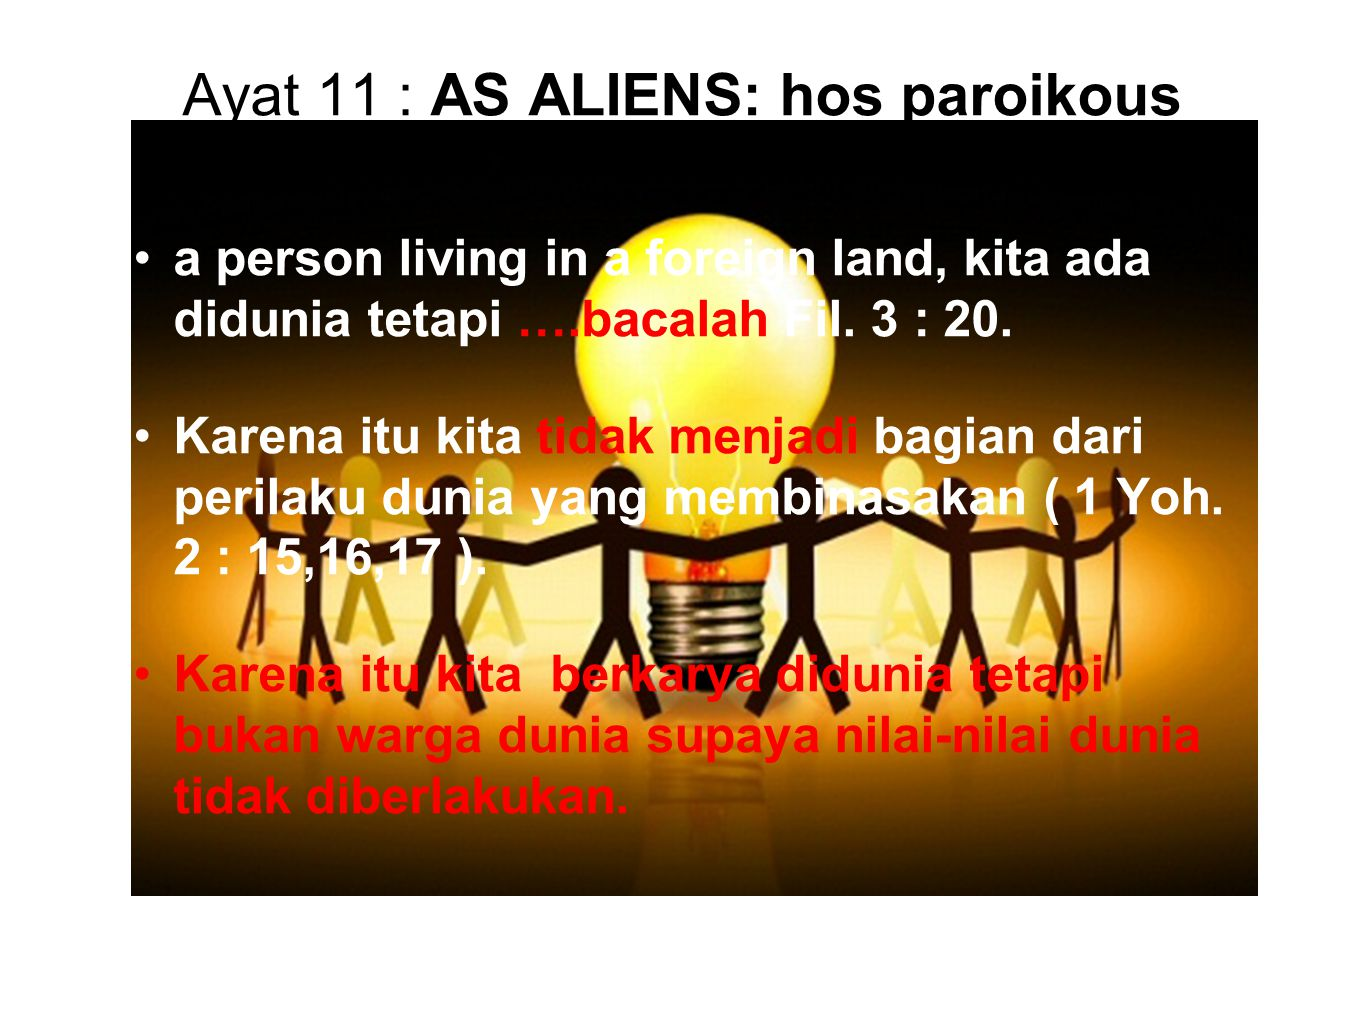 Ayat 11 : AS ALIENS: hos paroikous